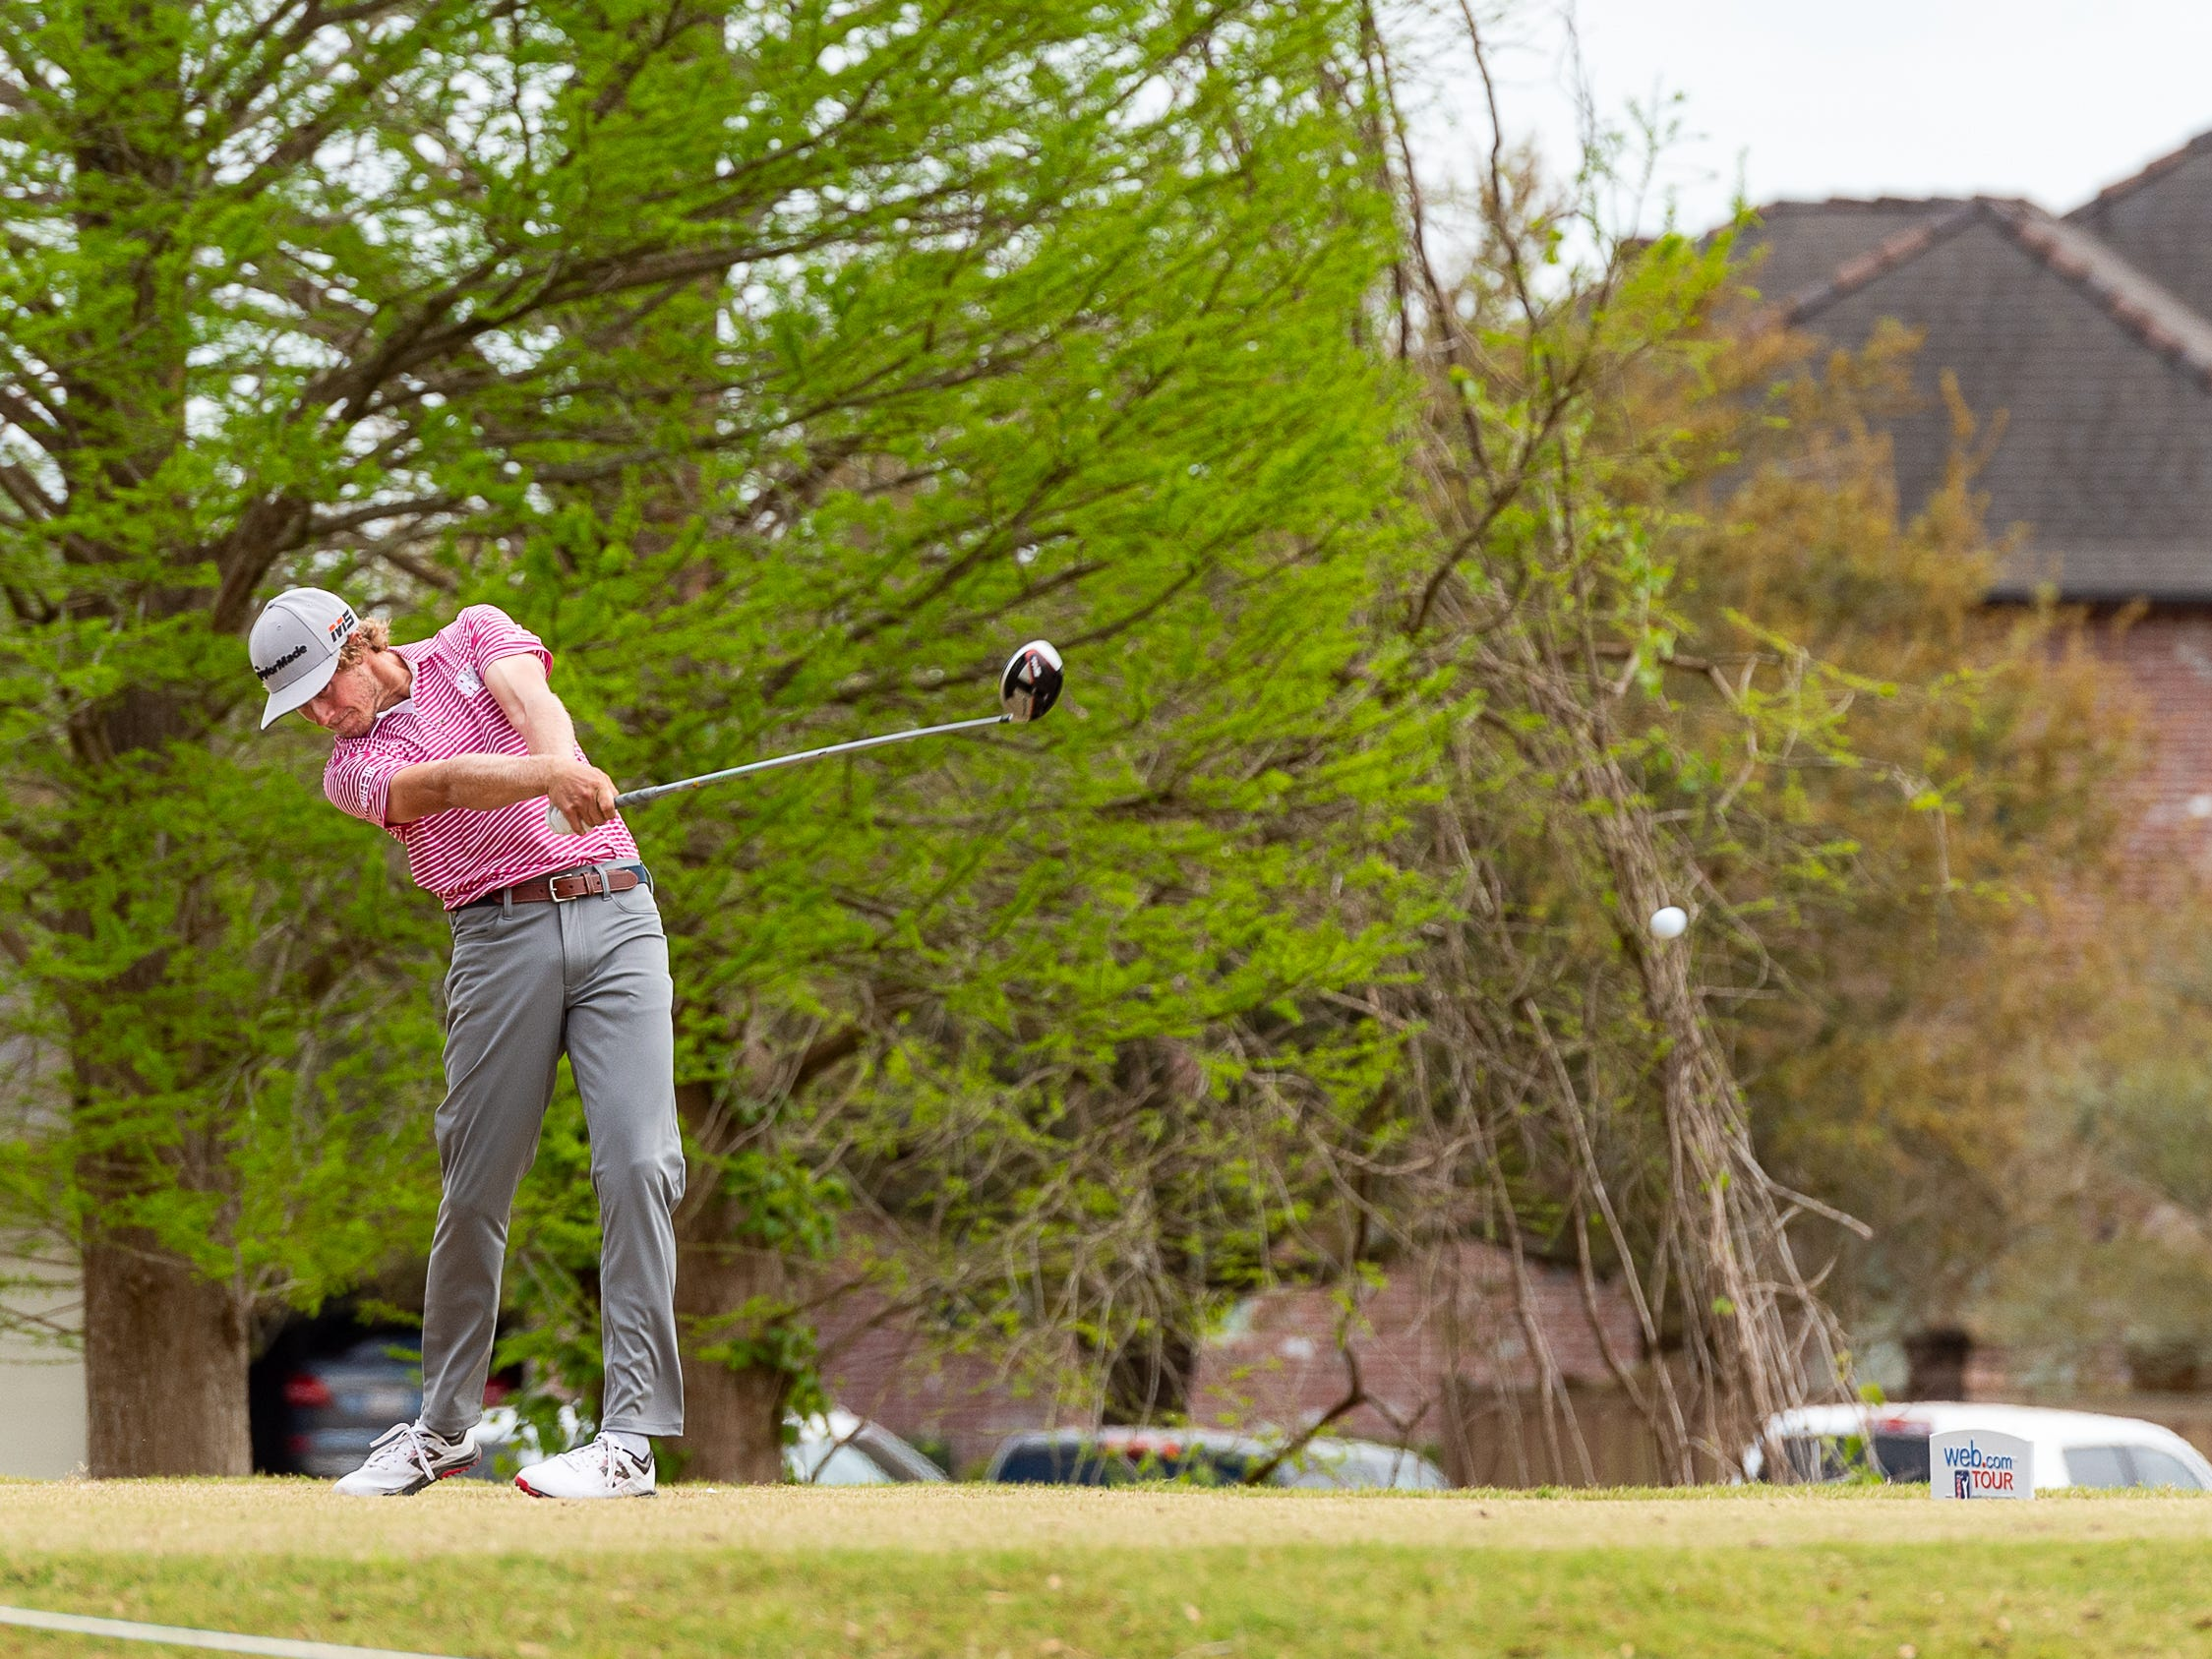 Austin Smotherman on the tee during the final round of the Web.com 2019 Chitimacha Louisiana Open presented by Mistras at Le Triomphe. Sunday, March 24, 2019.